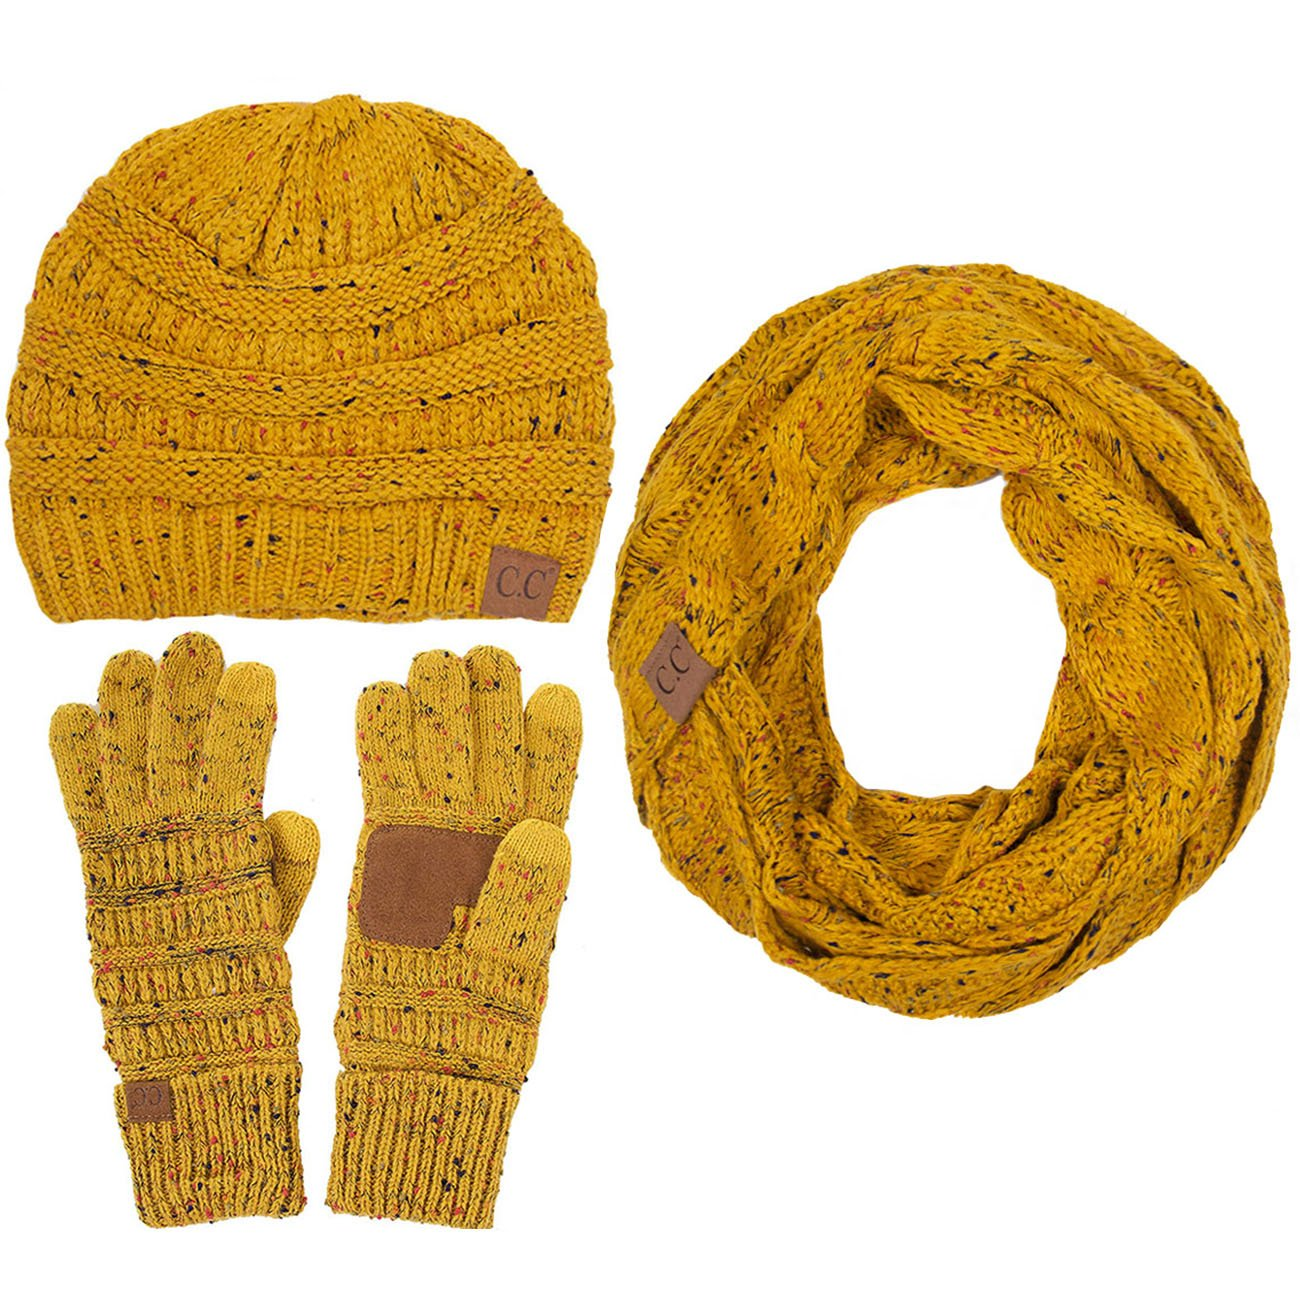 ScarvesMe C.C 3pc Trendy Confetti Thick Soft Warm Chunky Soft Stretch Cable Knit Beanie Gloves Scarves SET (Mustard)